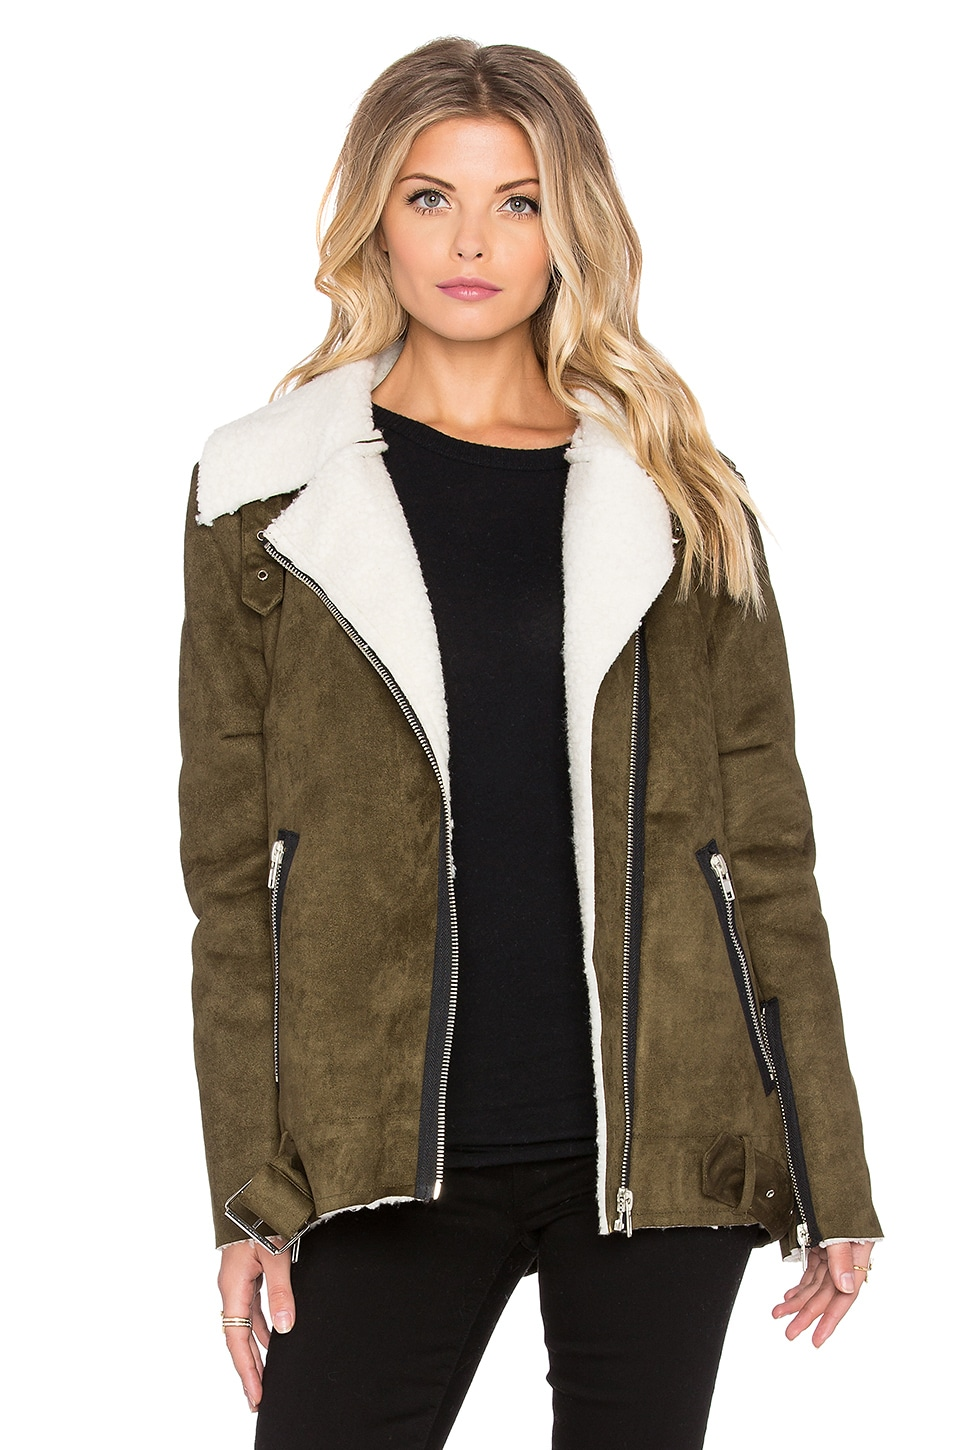 J.O.A. Asymmetric Suede Shearling Jacket in Olive